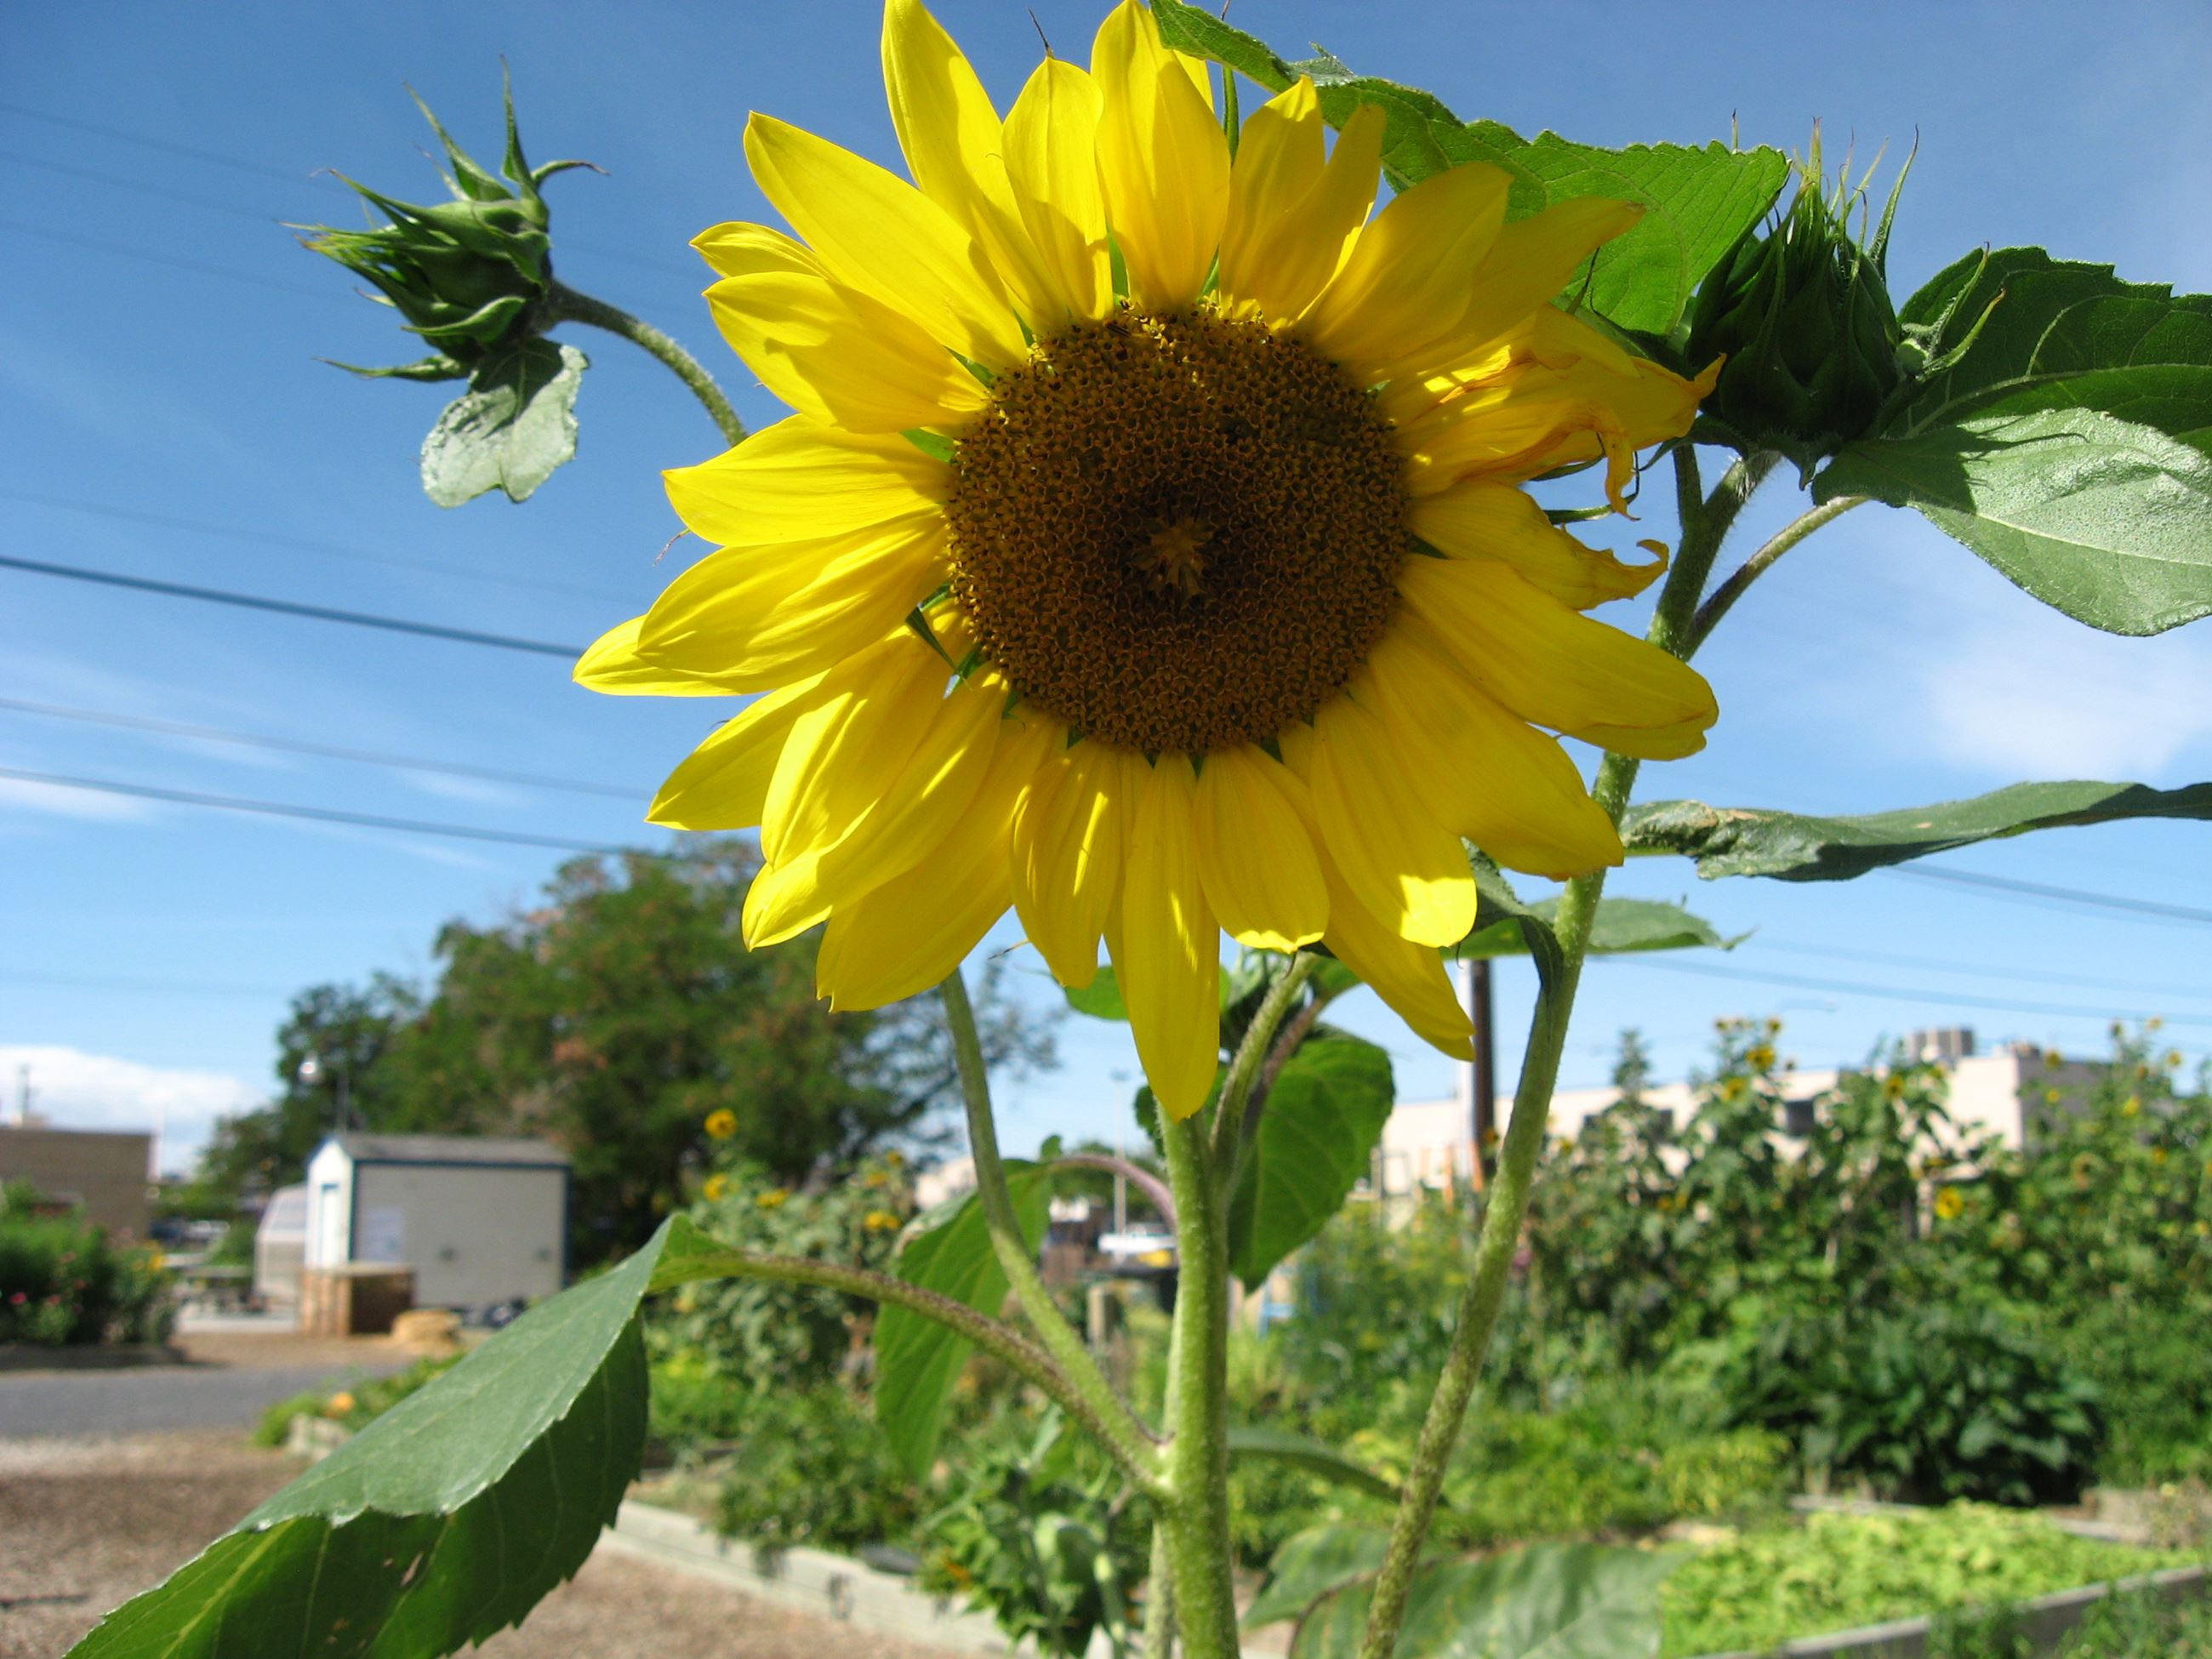 A sunflower blooms in the City's Community Gardens